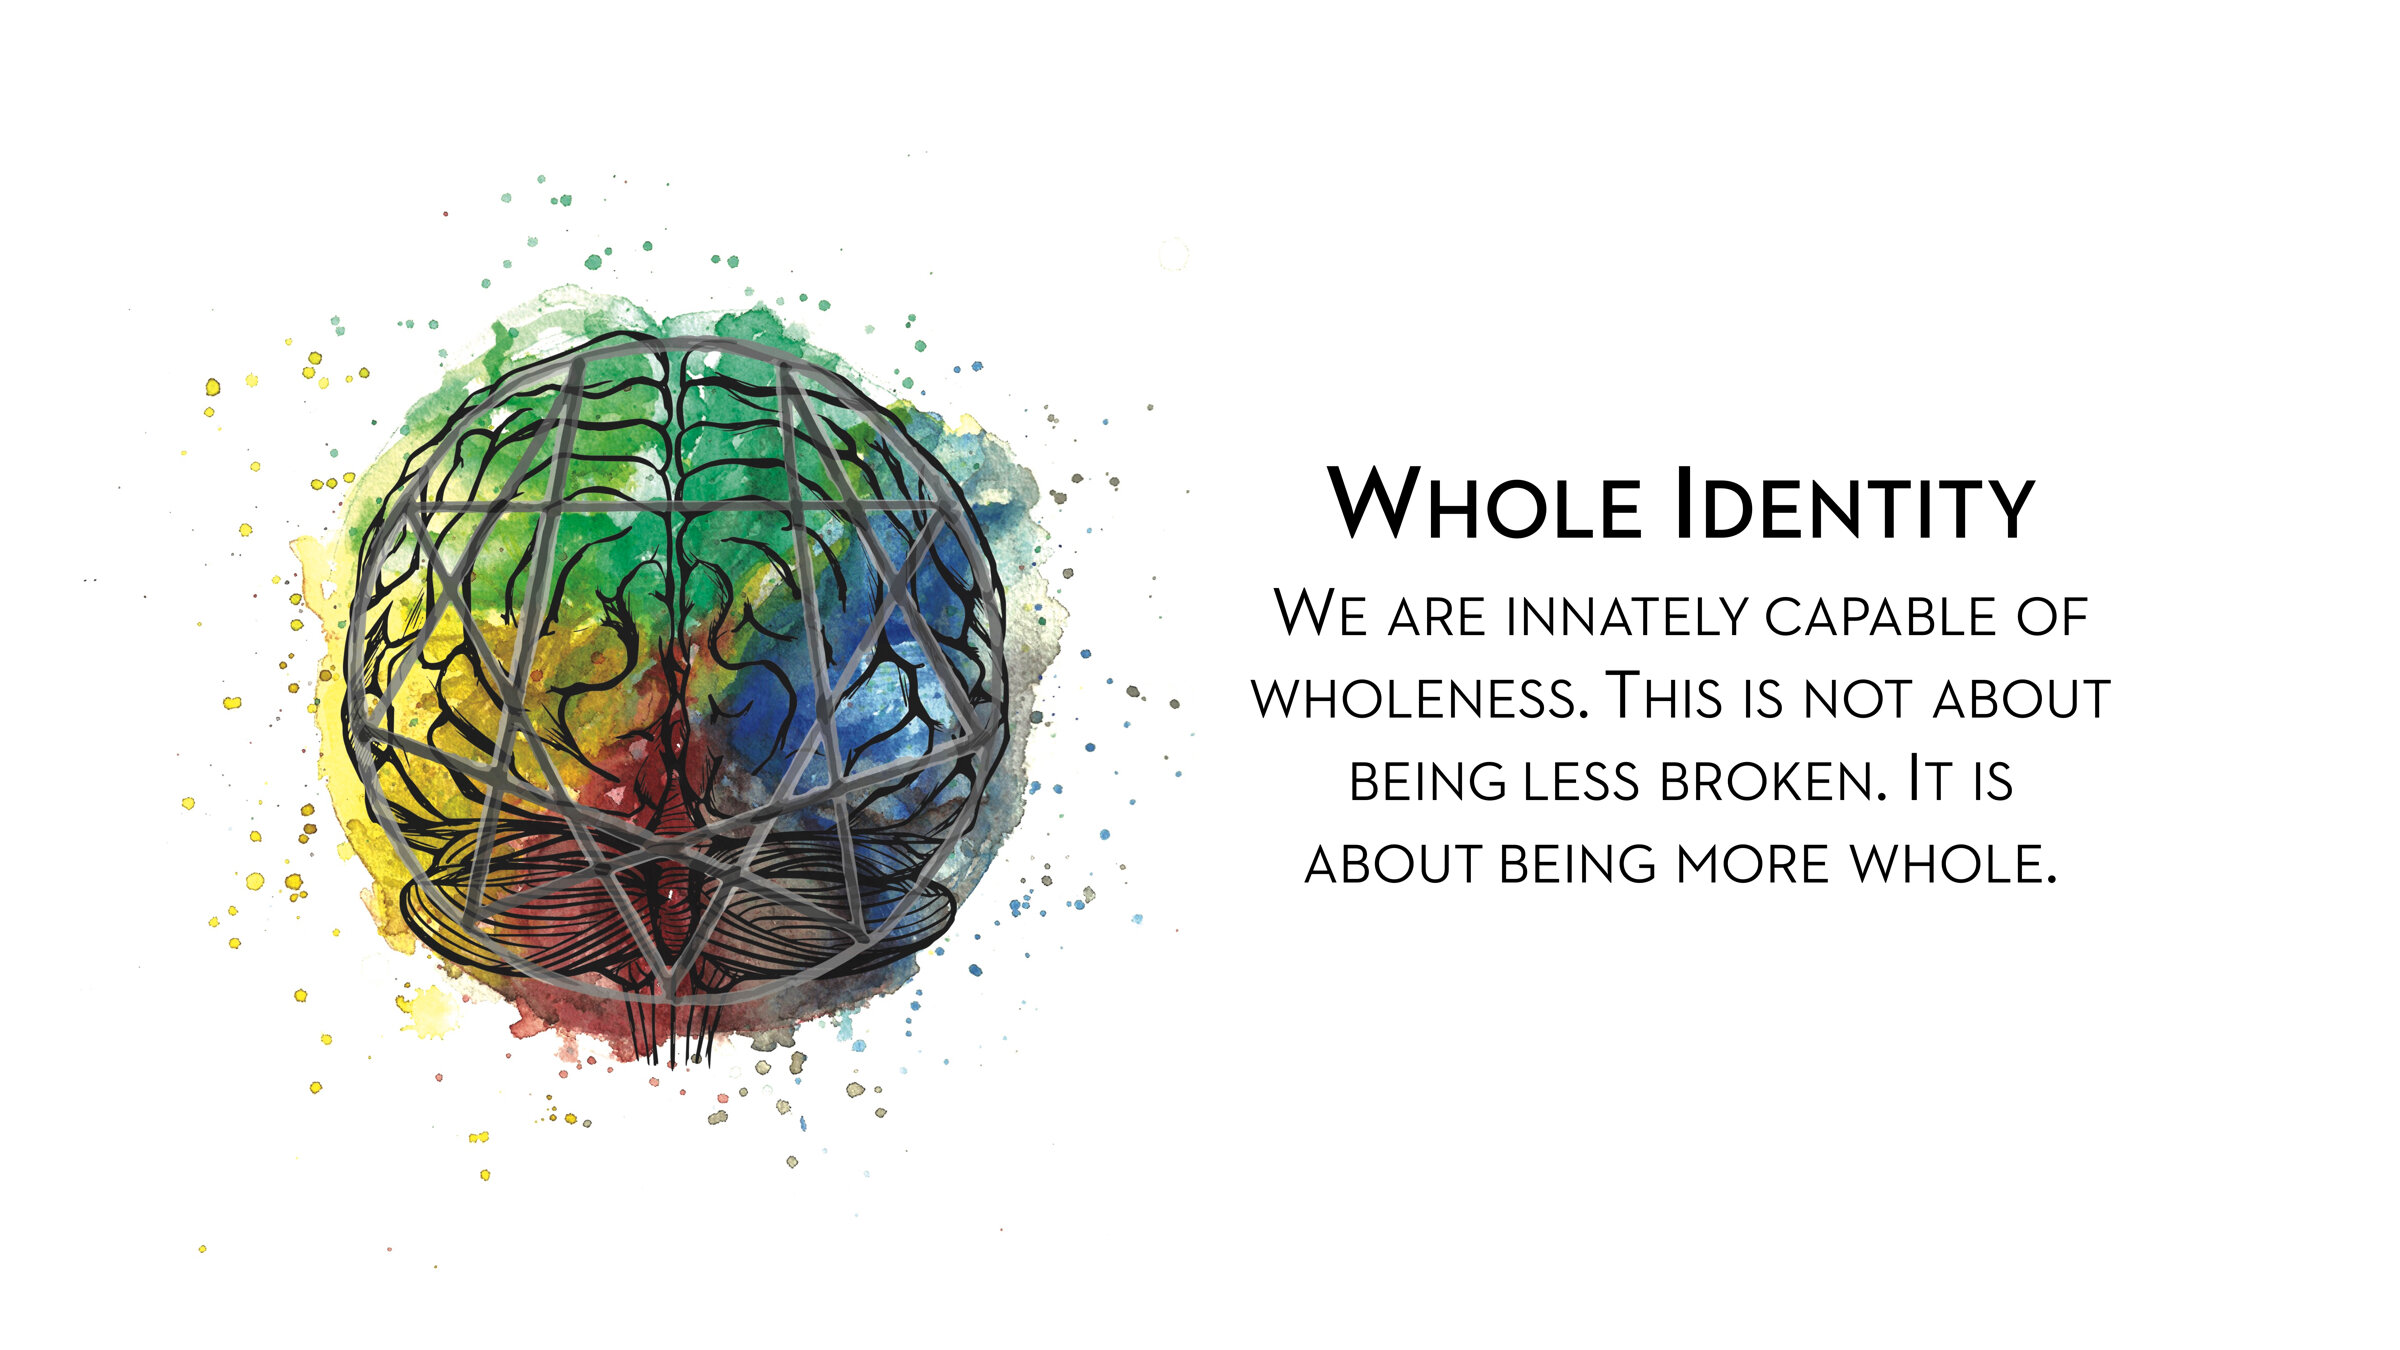 —— Click the image above to learn more about the ground-breaking and innovative brain-based Enneagram model, Whole Identity. ——